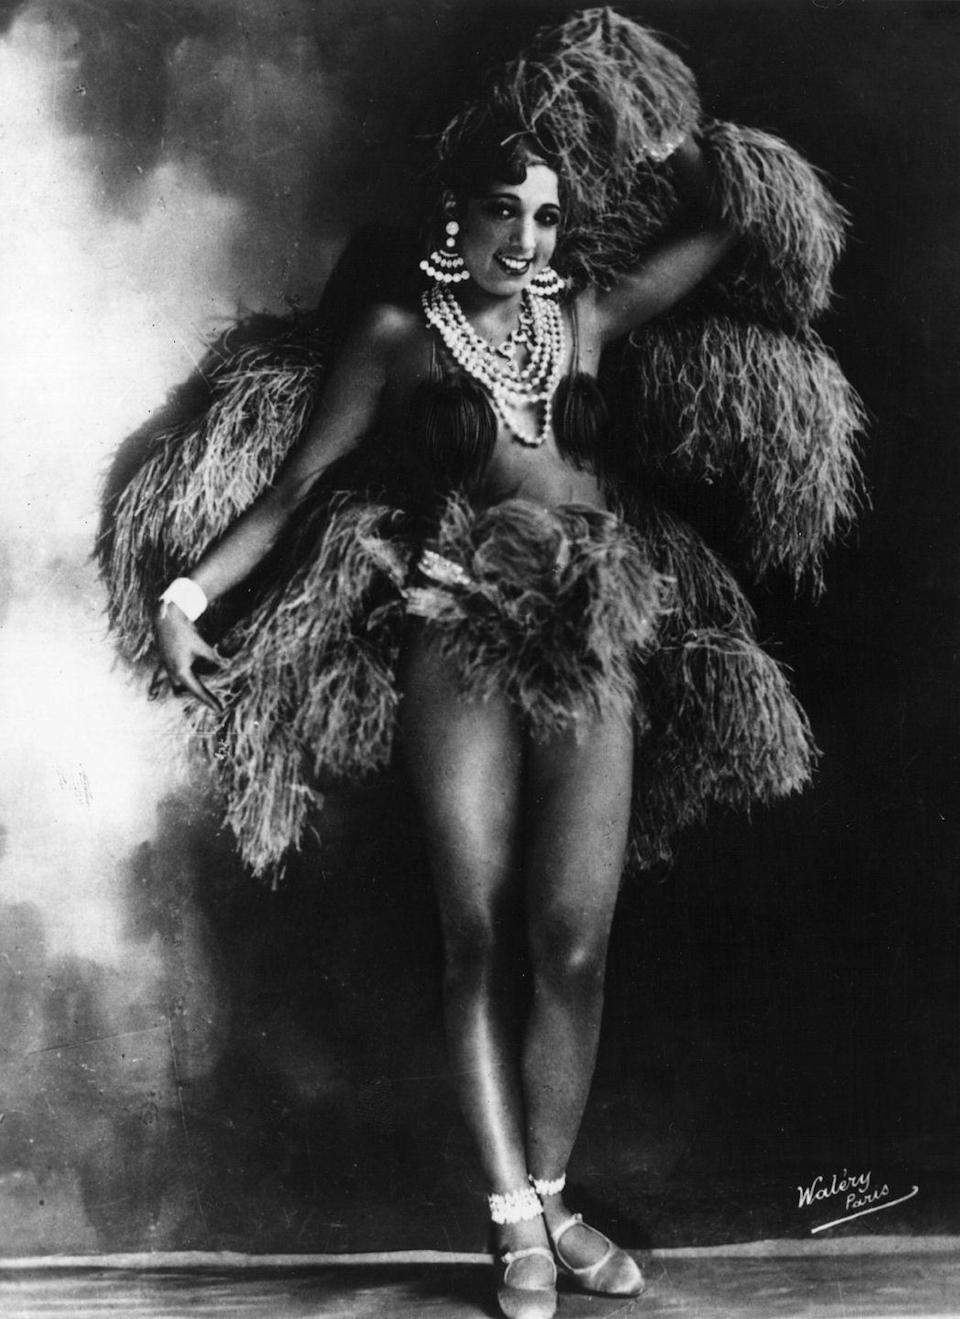 <p>An elaborate costume of feathers, chunky jewelry, and a large headpiece give Baker, who performed with the Parisian Folies Bergere, an otherworldly air.<br></p>